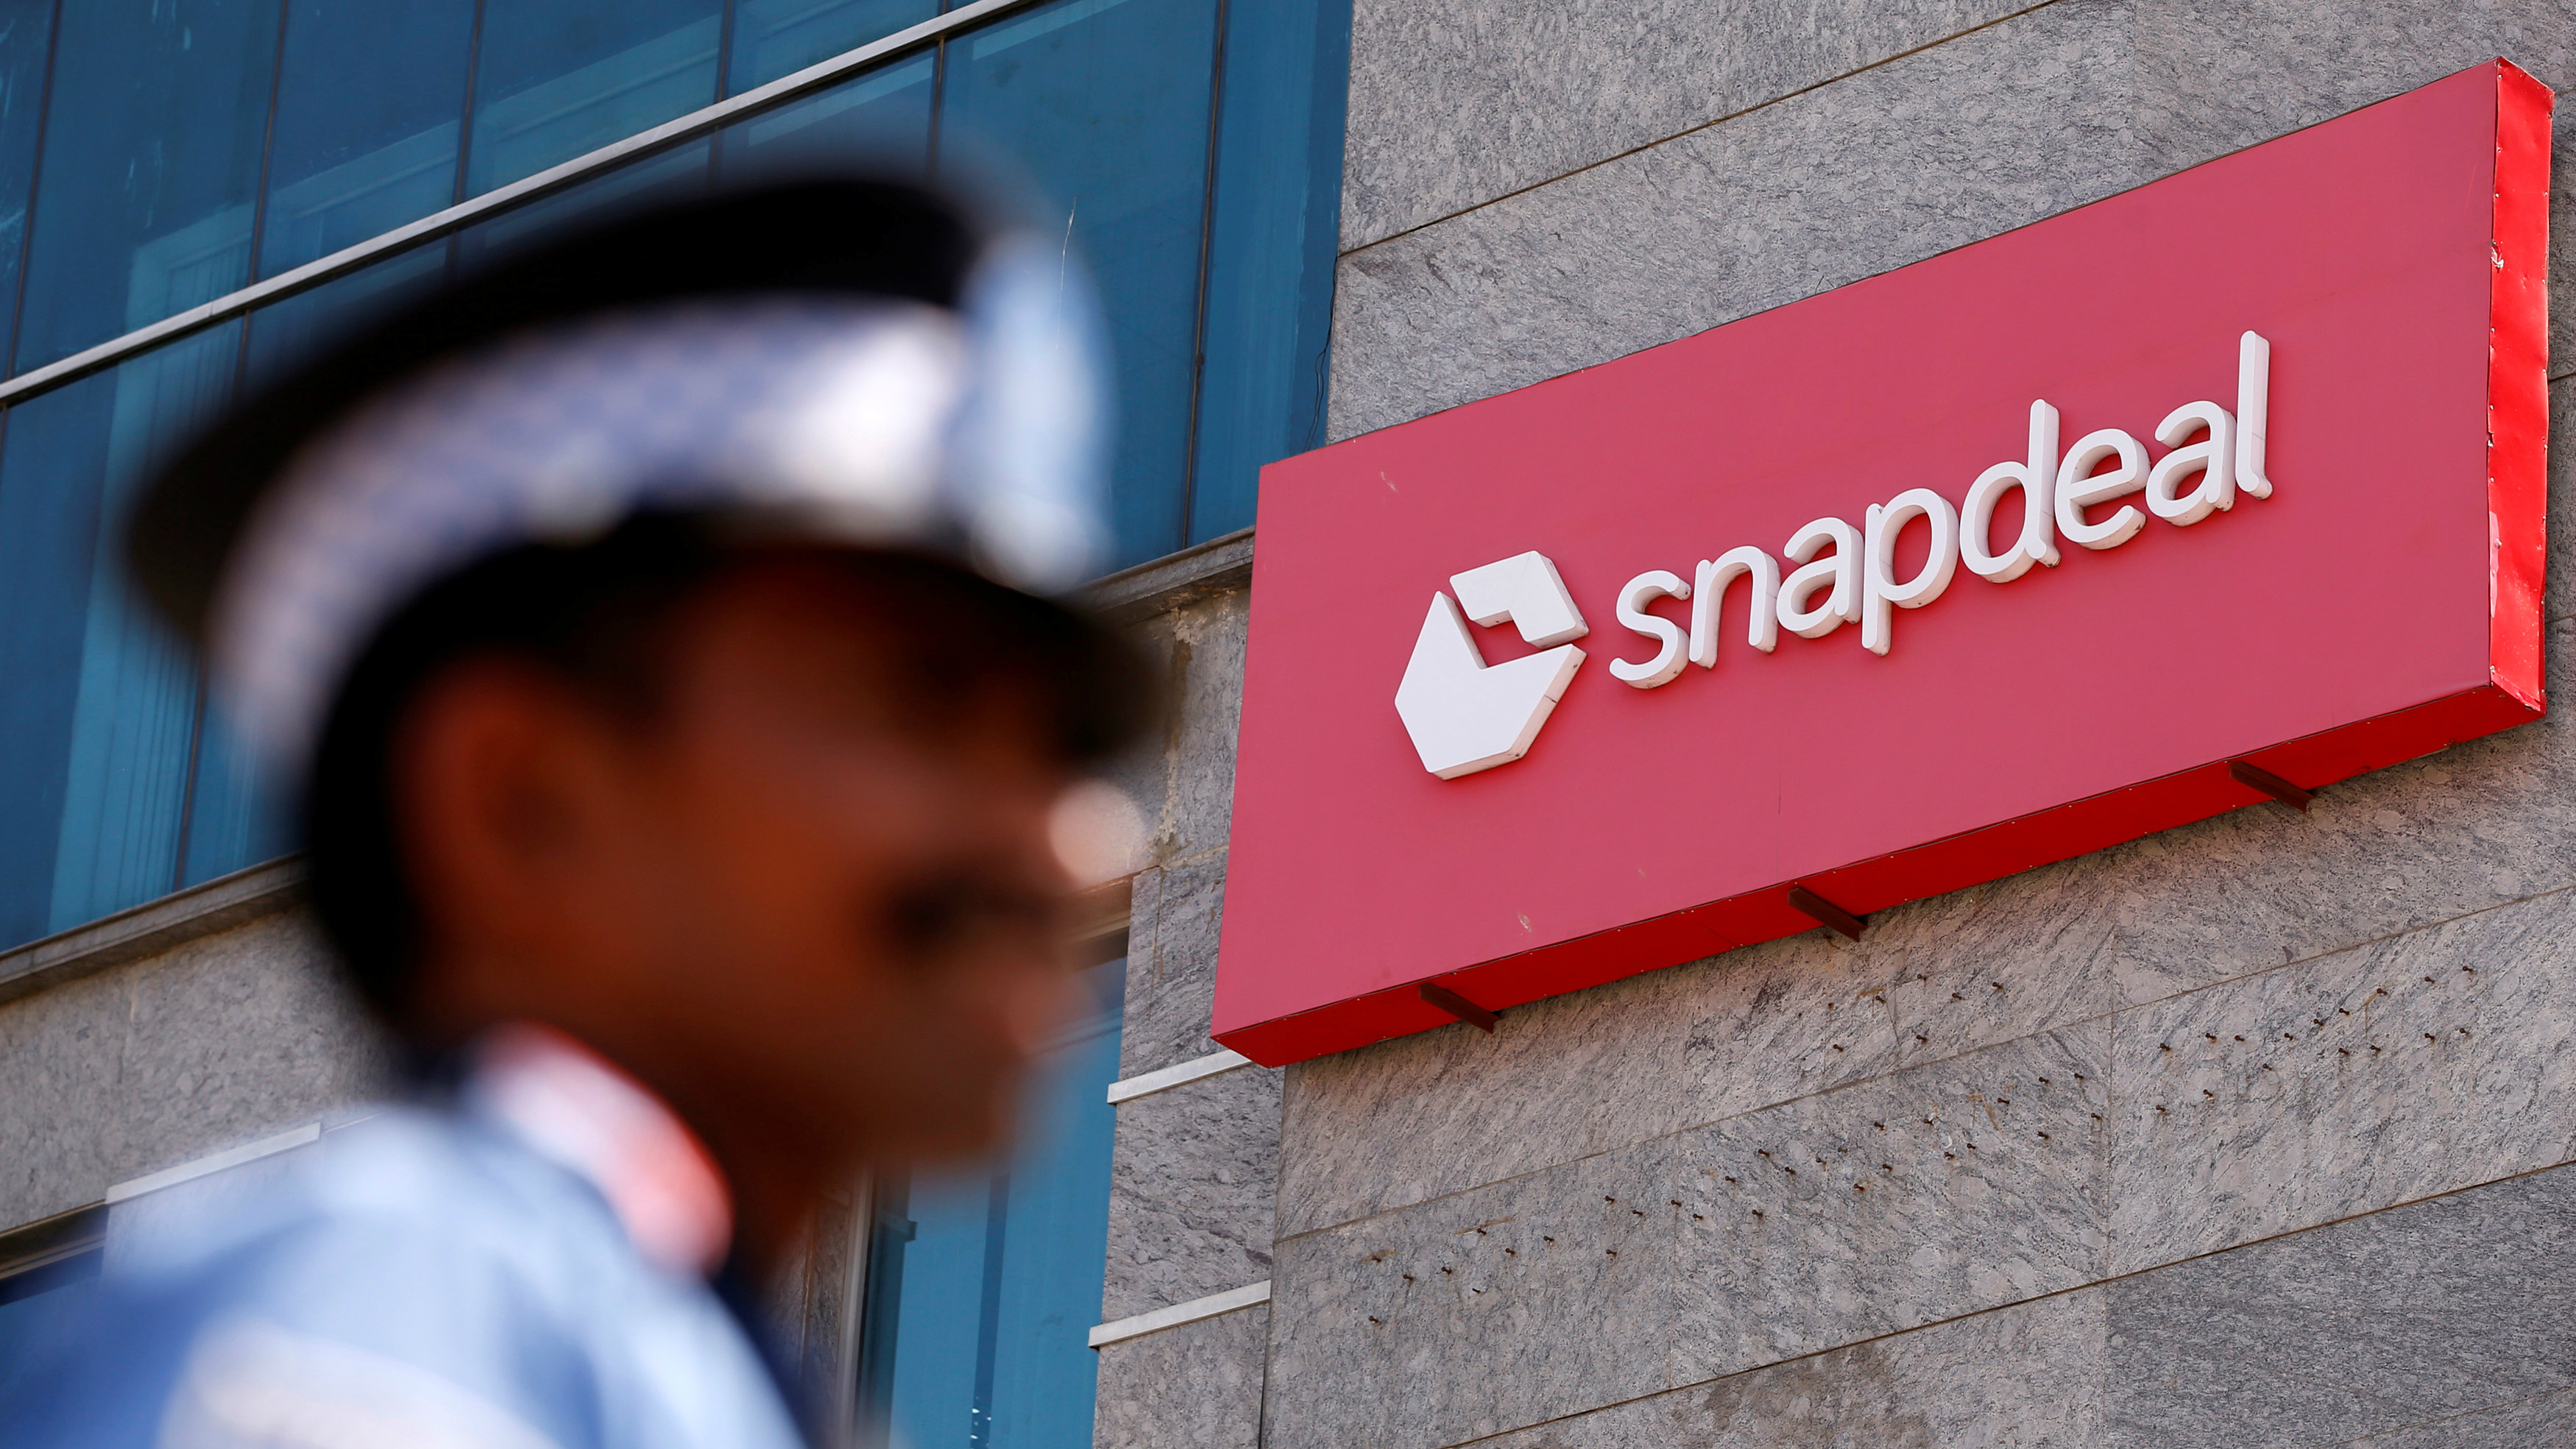 A private security gurad stands at a gate of Snapdeal headquarters in Gurugram on the outskirts of New Delhi, India, April 3, 2017. Picture taken April 3. REUTERS/Adnan Abidi